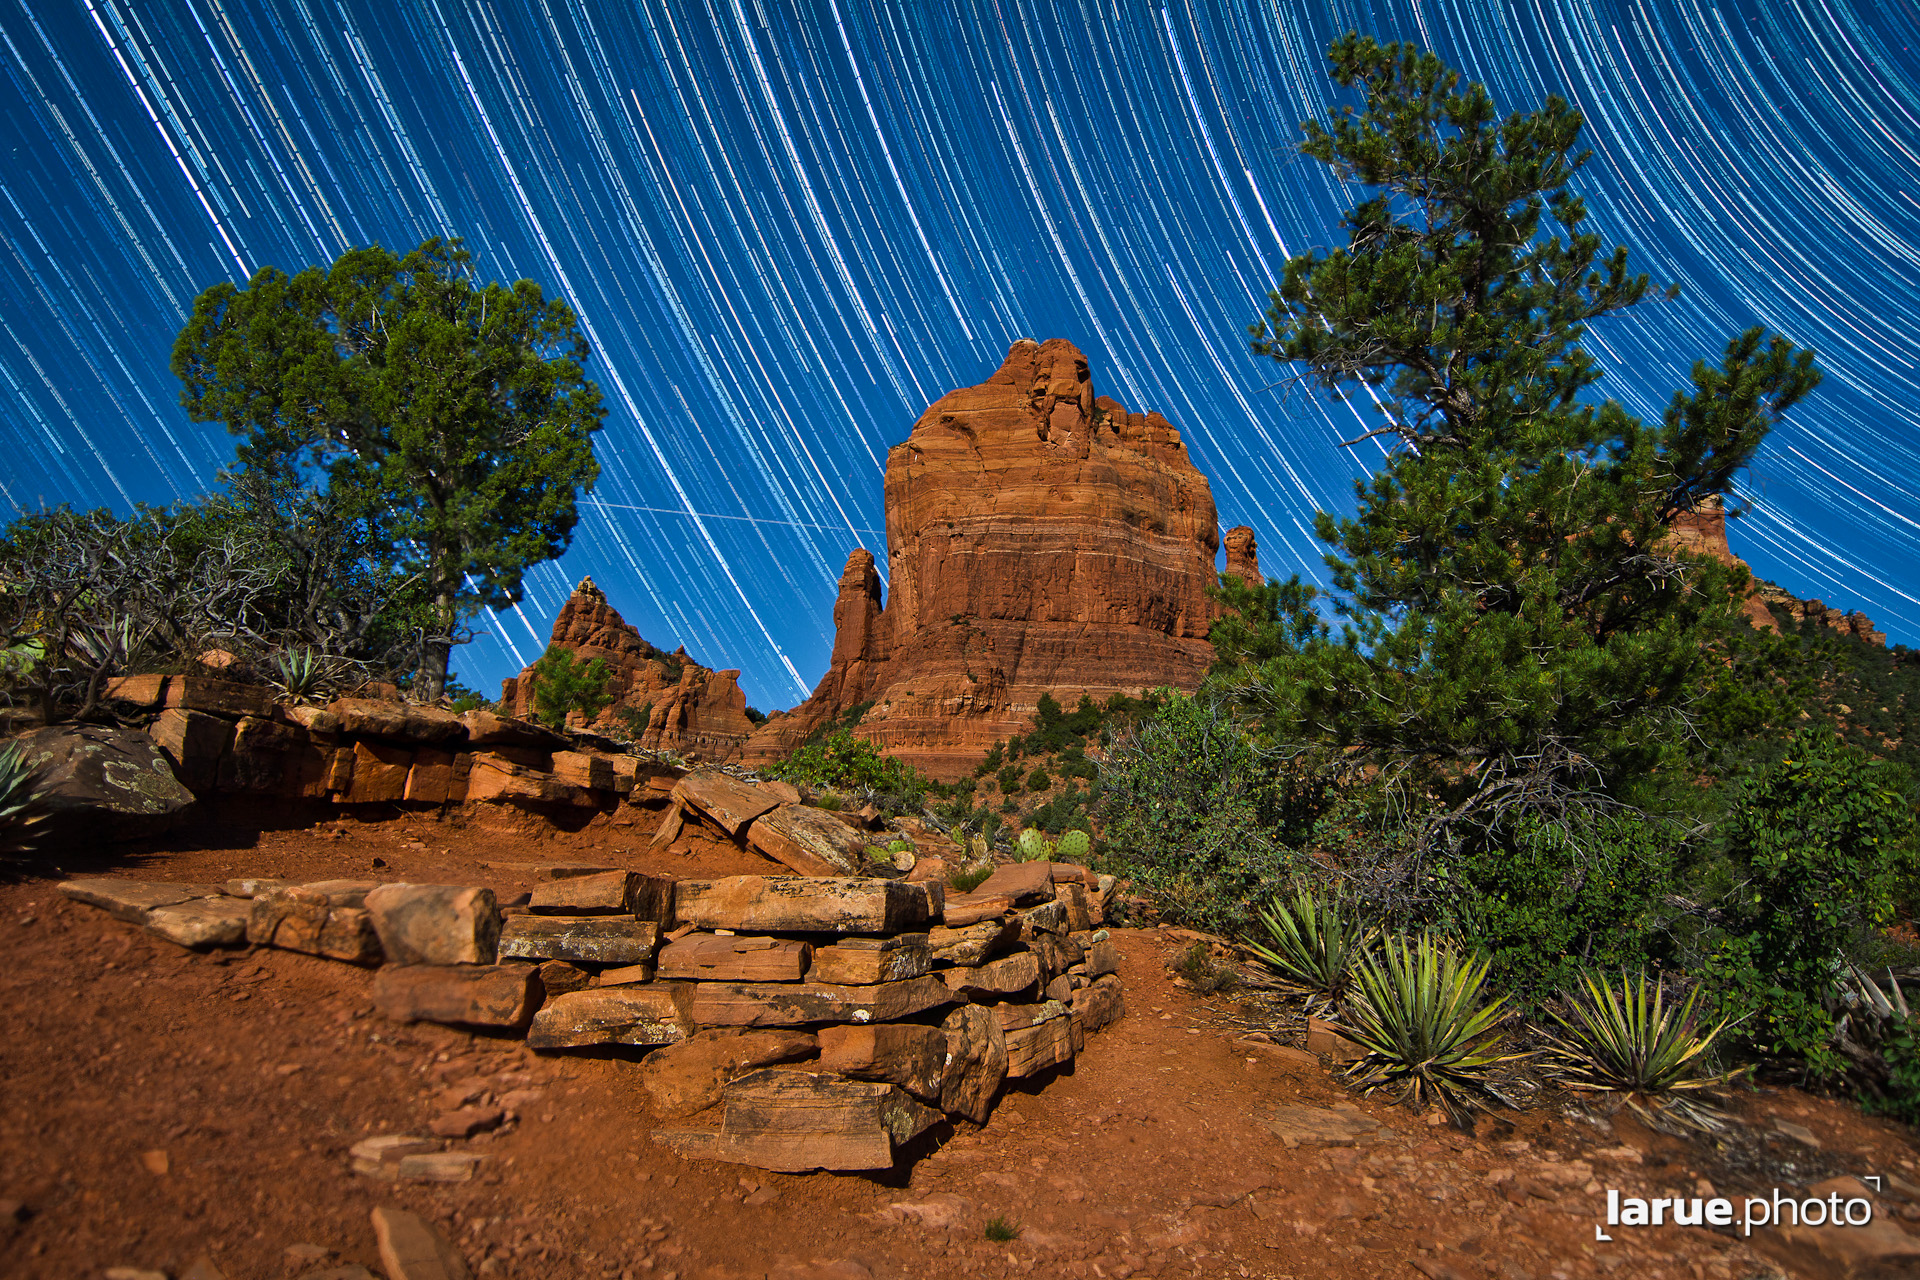 Star Trails Over The Mitten & The Foundation